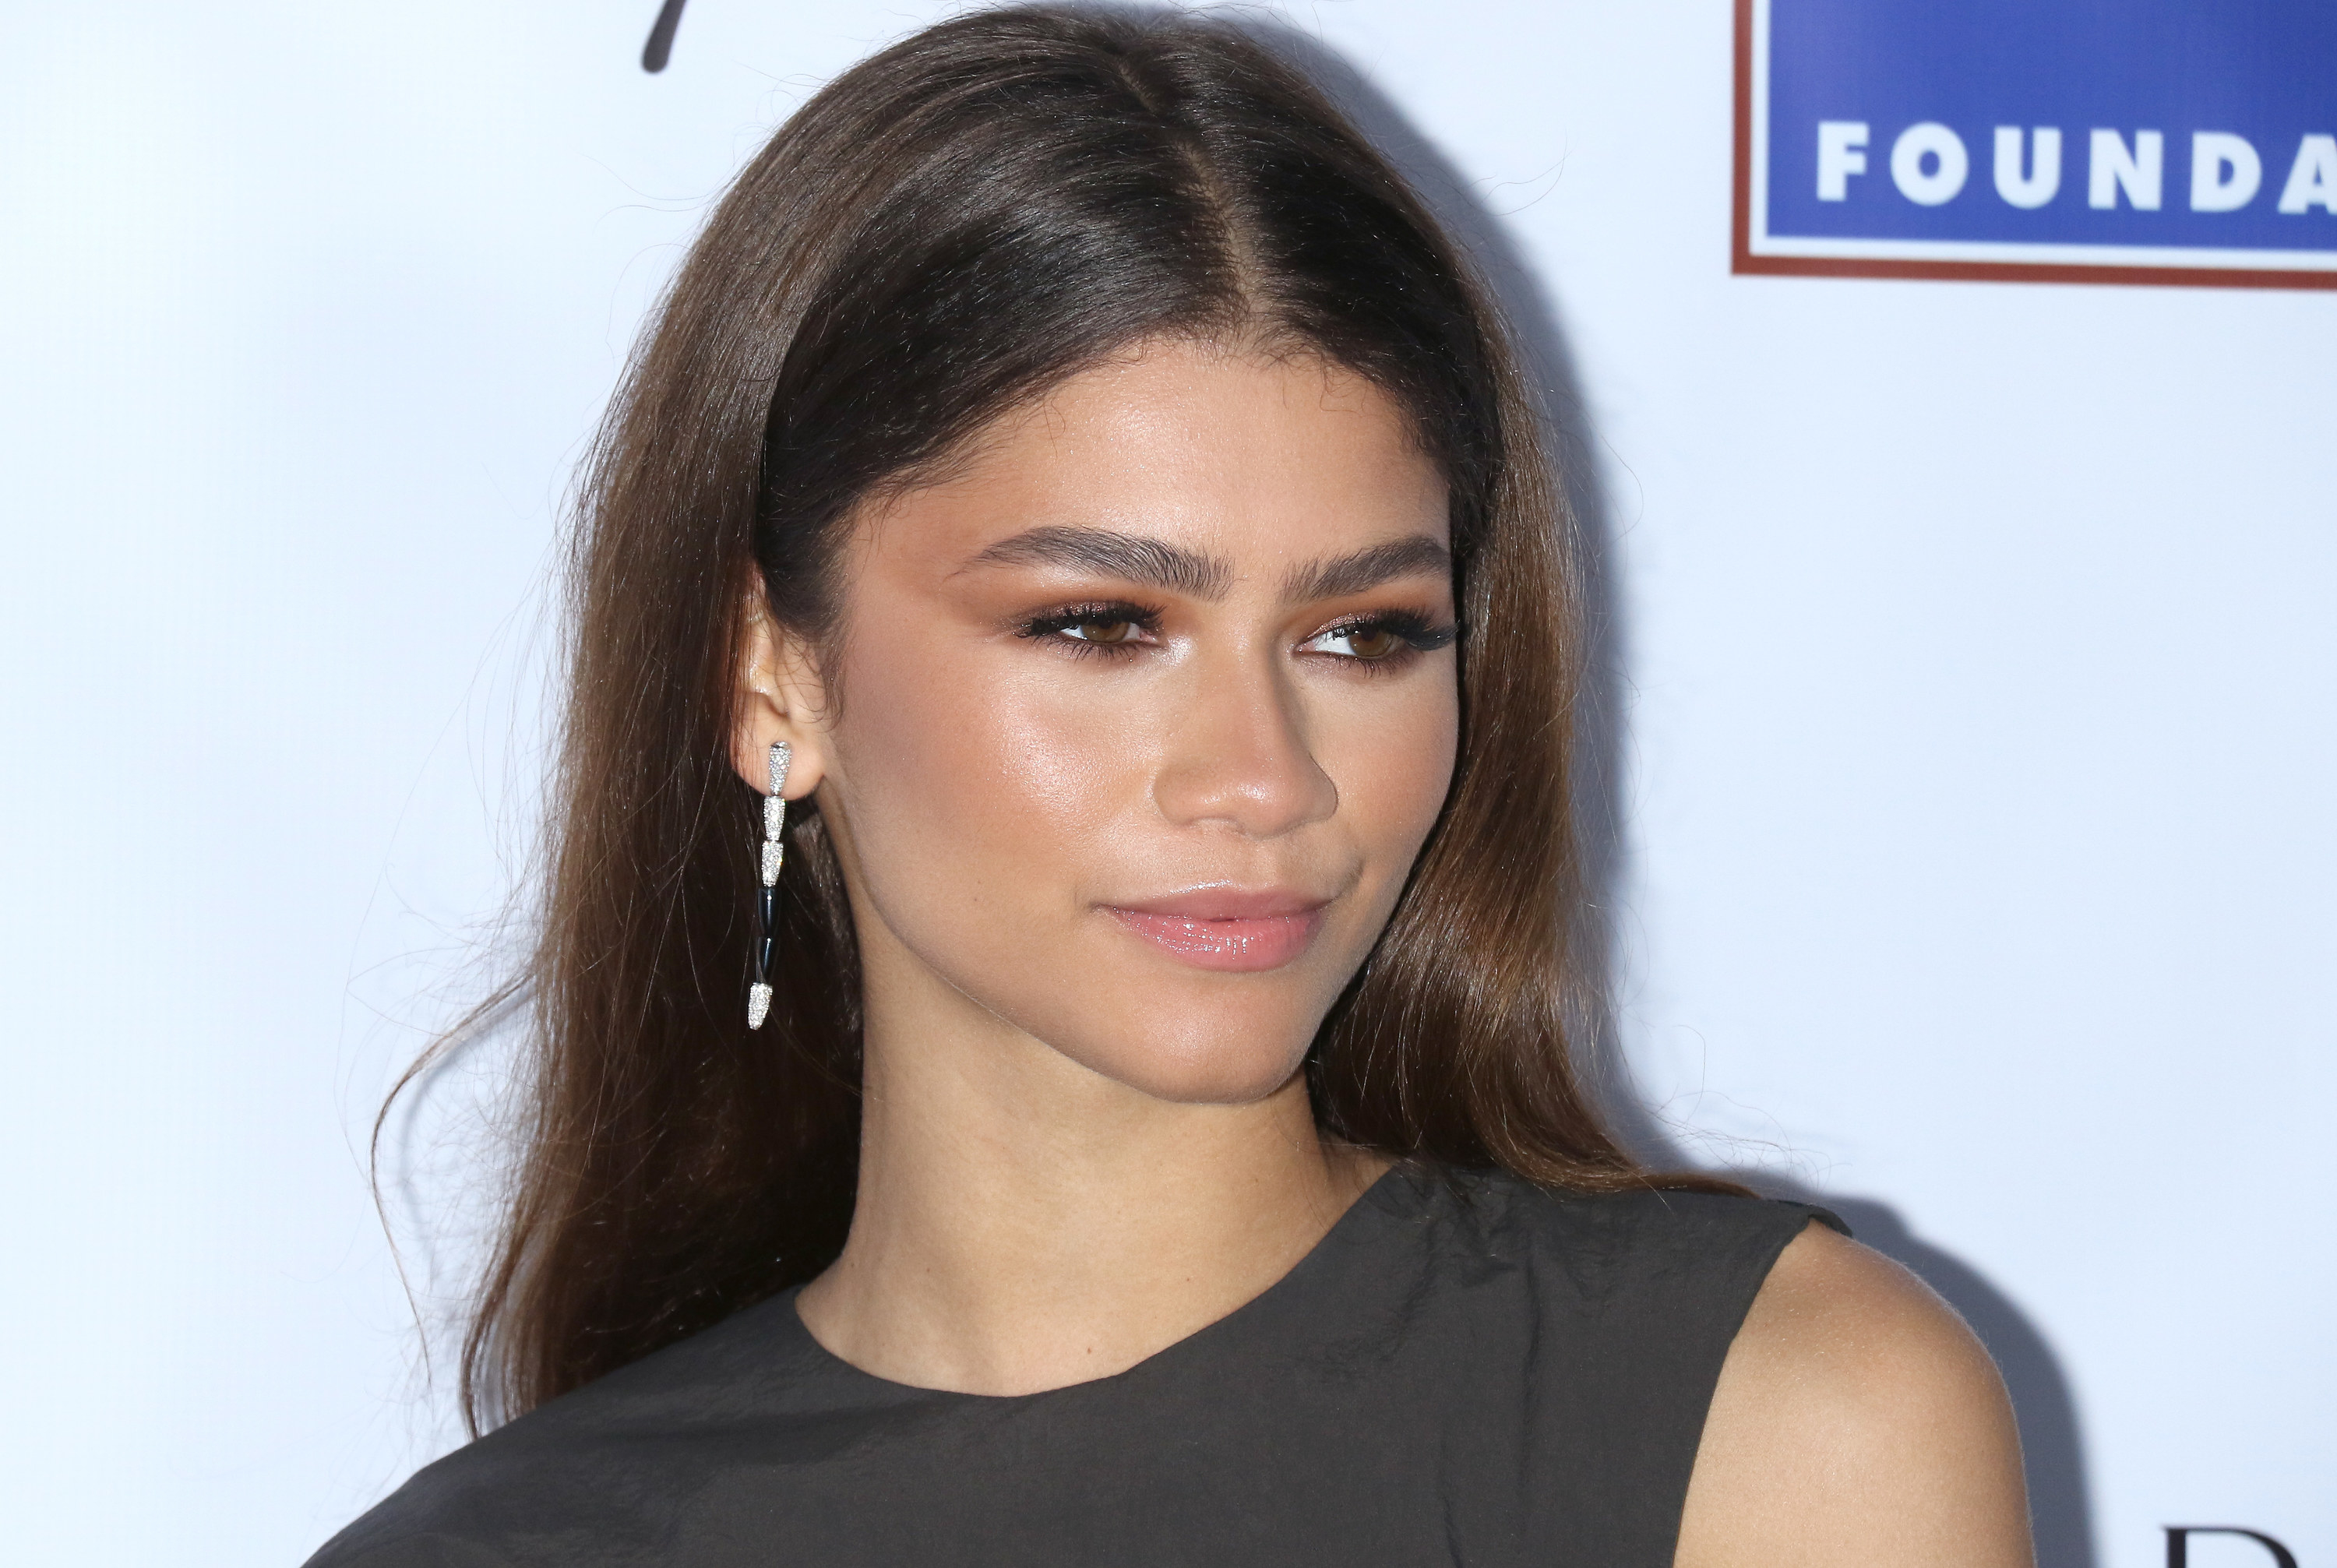 Zendaya in a black dress at the 2020 AAA Arts Awards